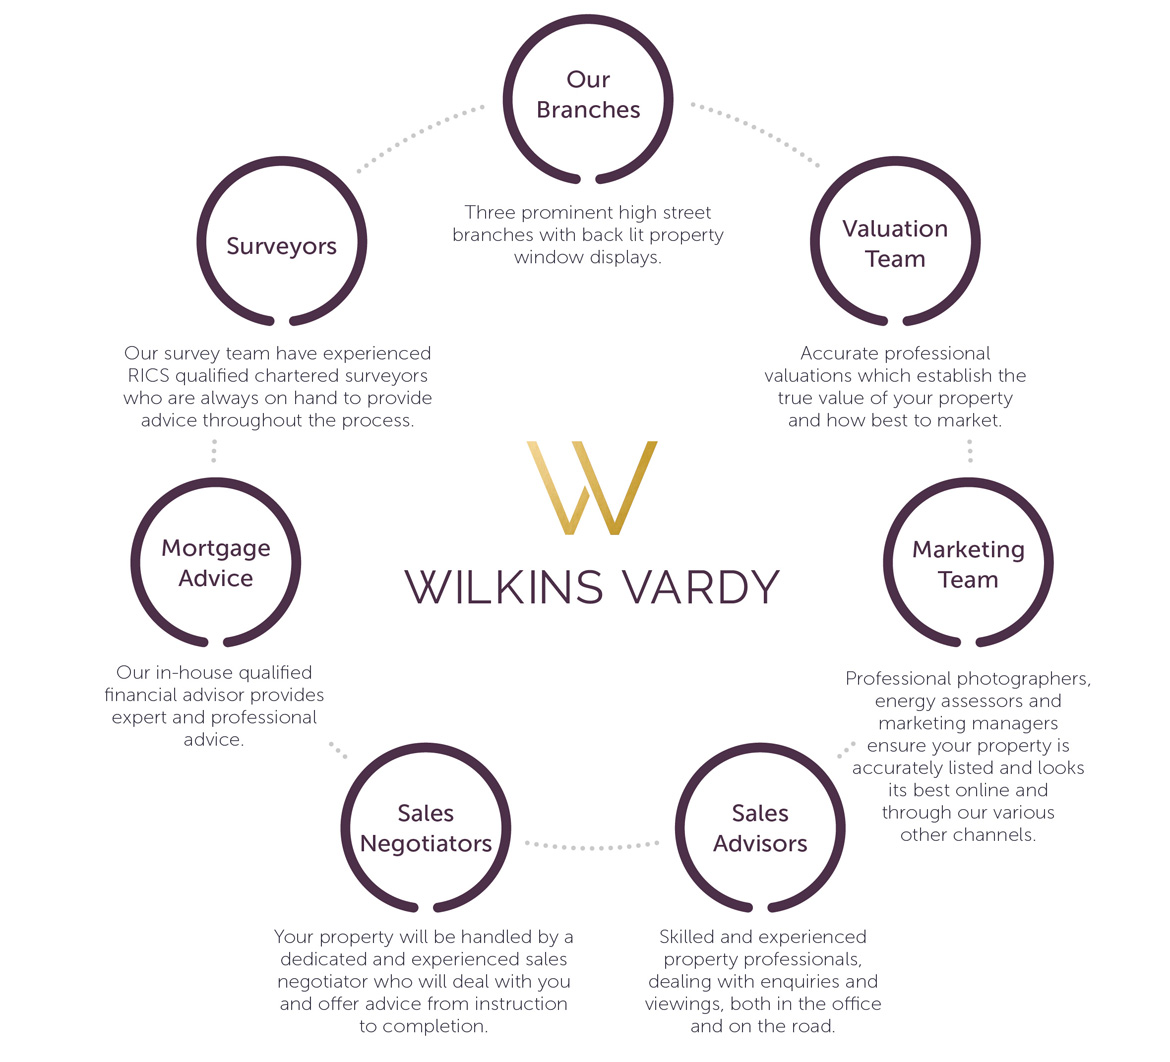 Wilkins Vardy about Information